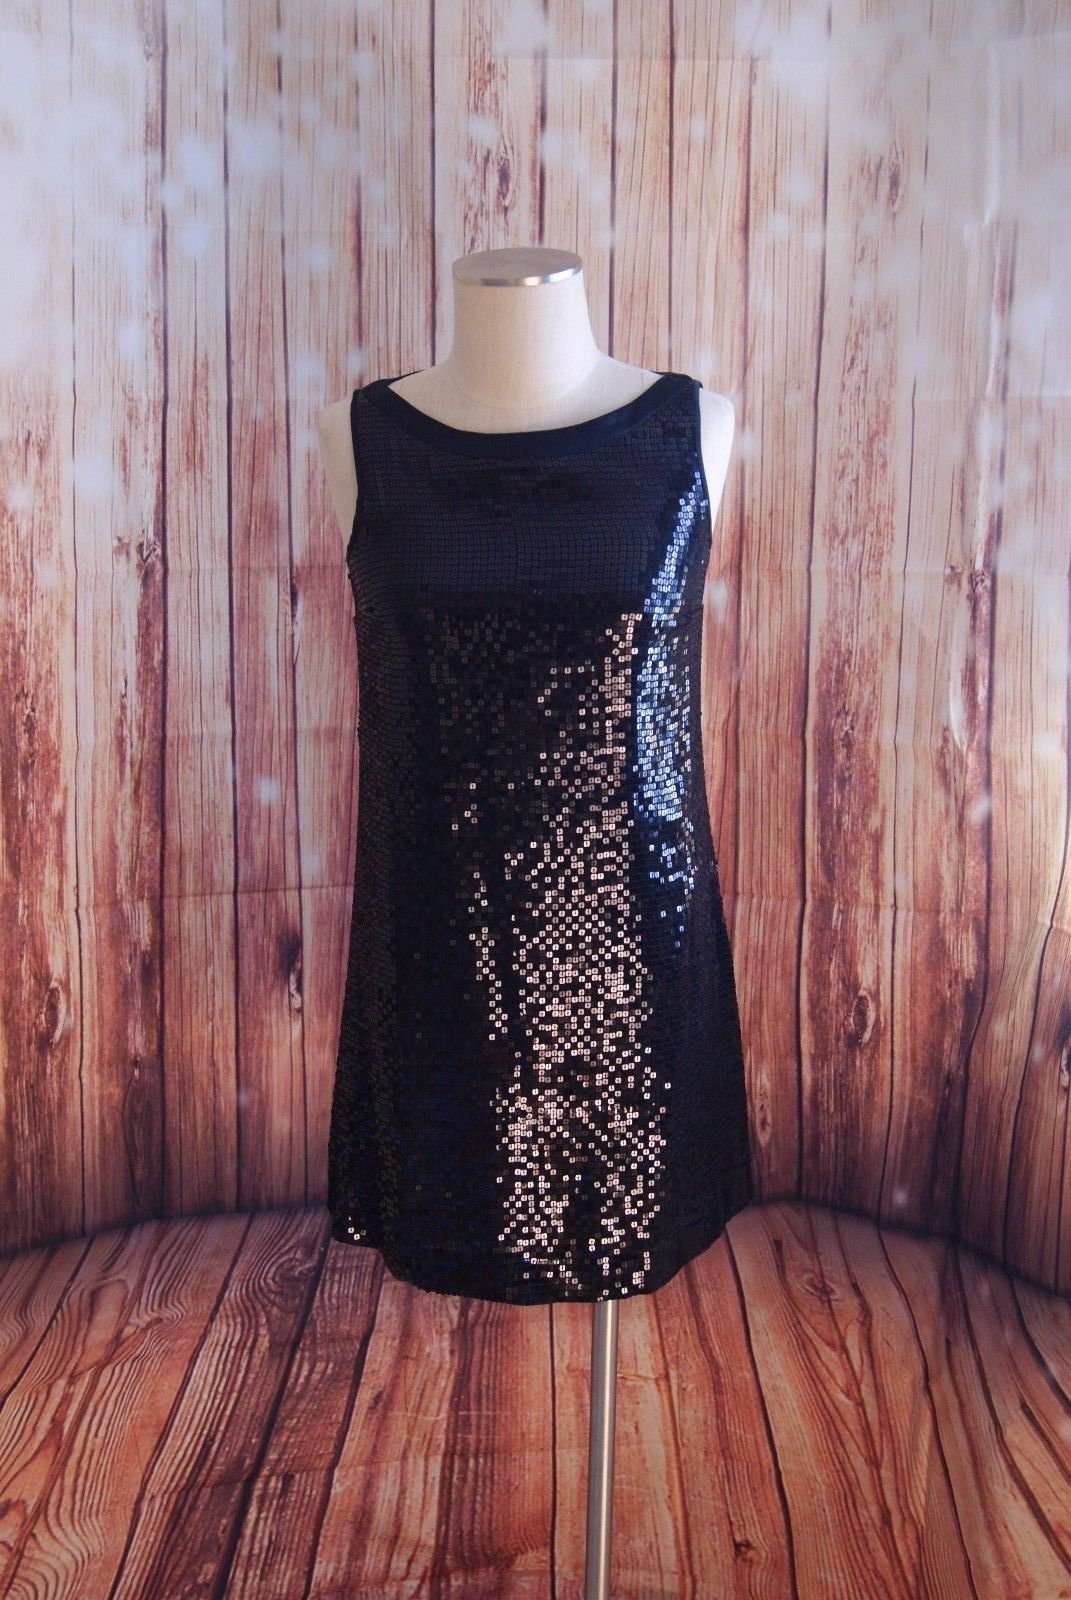 Cool Awesome For Love and Liberty Vintage Johnny Was Black Sequin Shift Cocktail Dress Sz S 2017 2018 Check more at http://24shopping.gq/fashion/awesome-for-love-and-liberty-vintage-johnny-was-black-sequin-shift-cocktail-dress-sz-s-2017-2018/